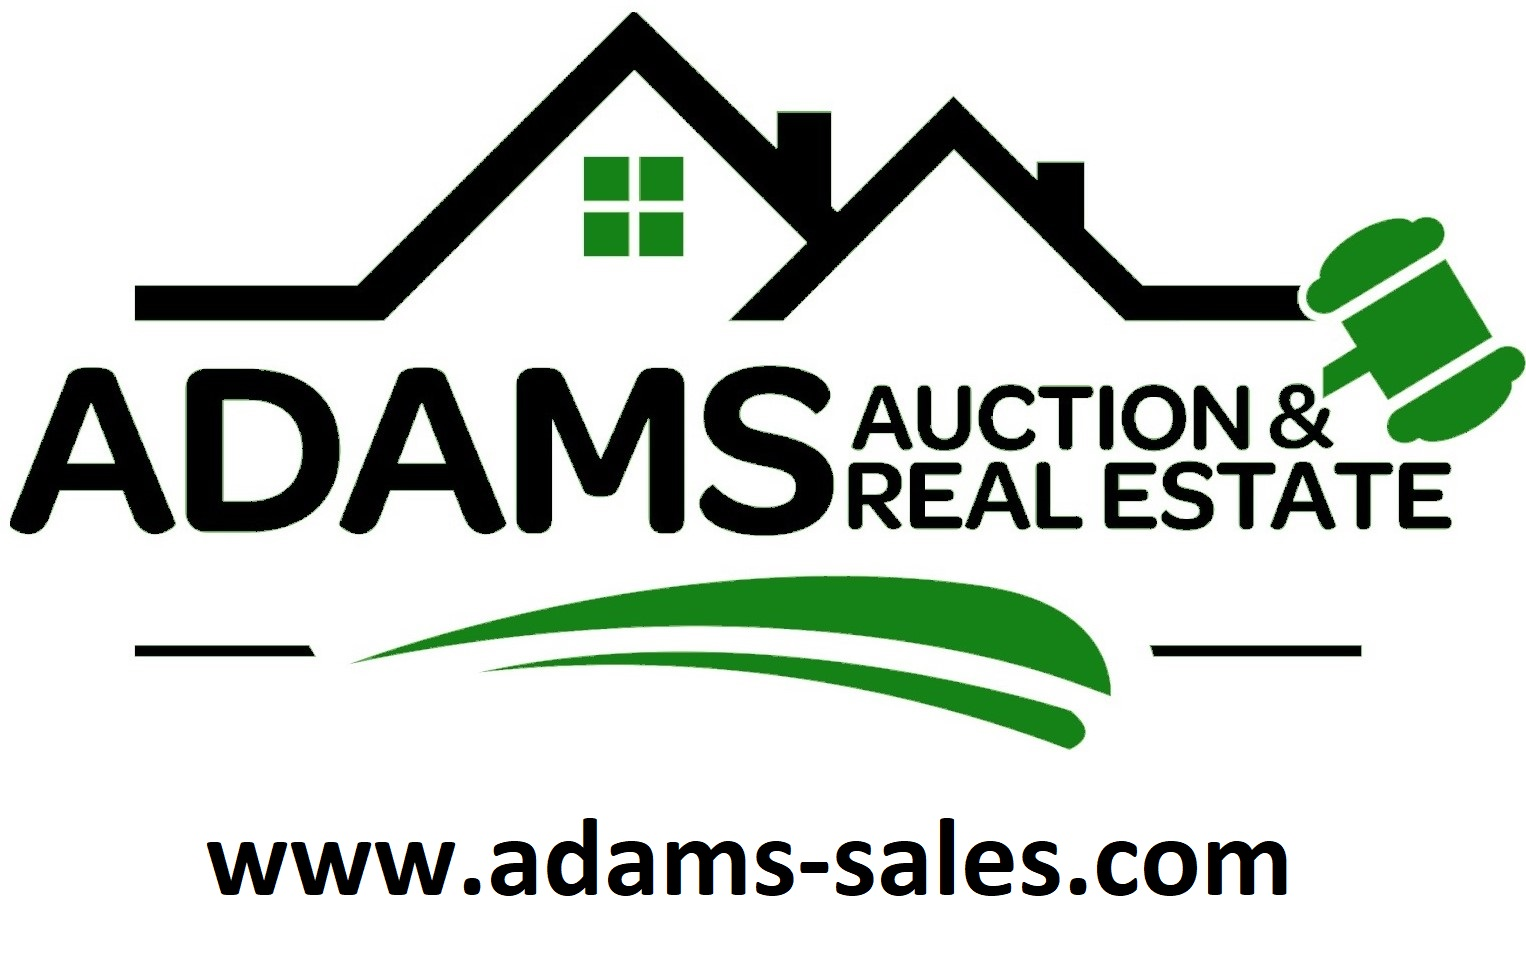 Adams Auction & Real Estate